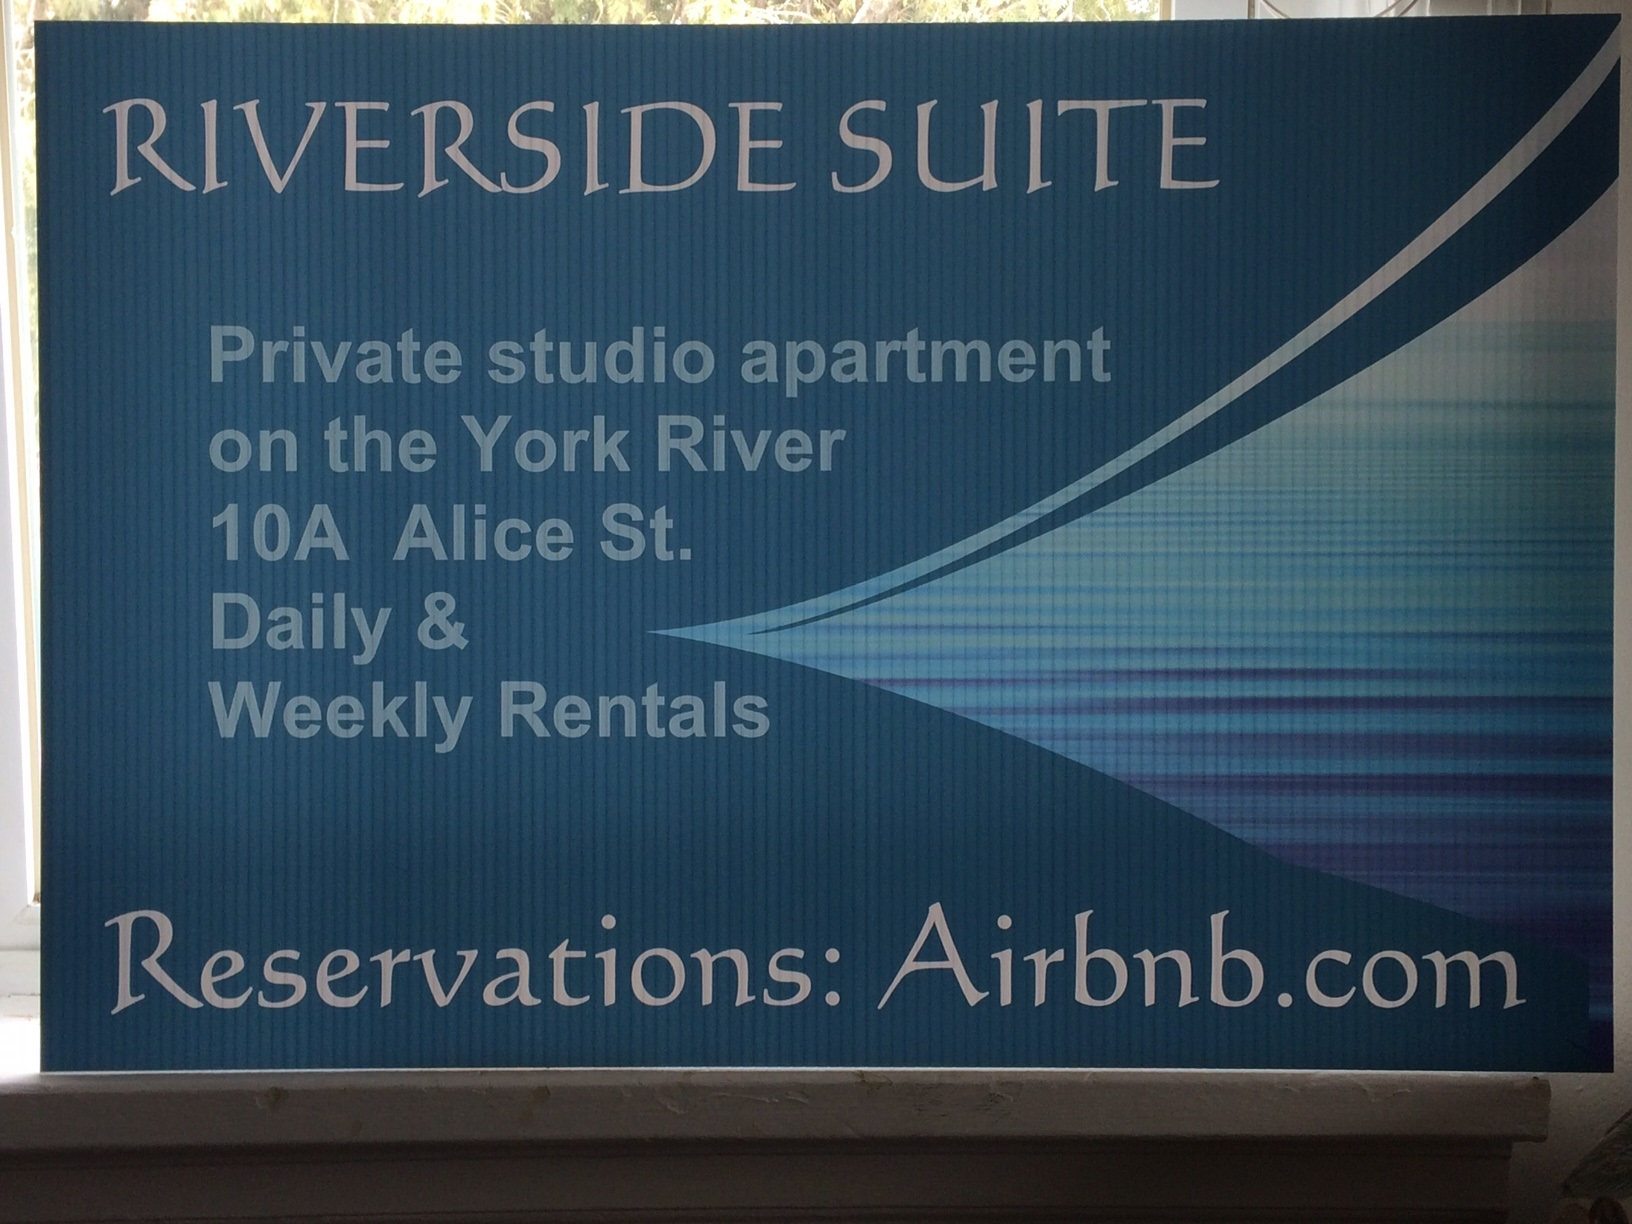 Riverside Suite on the York River